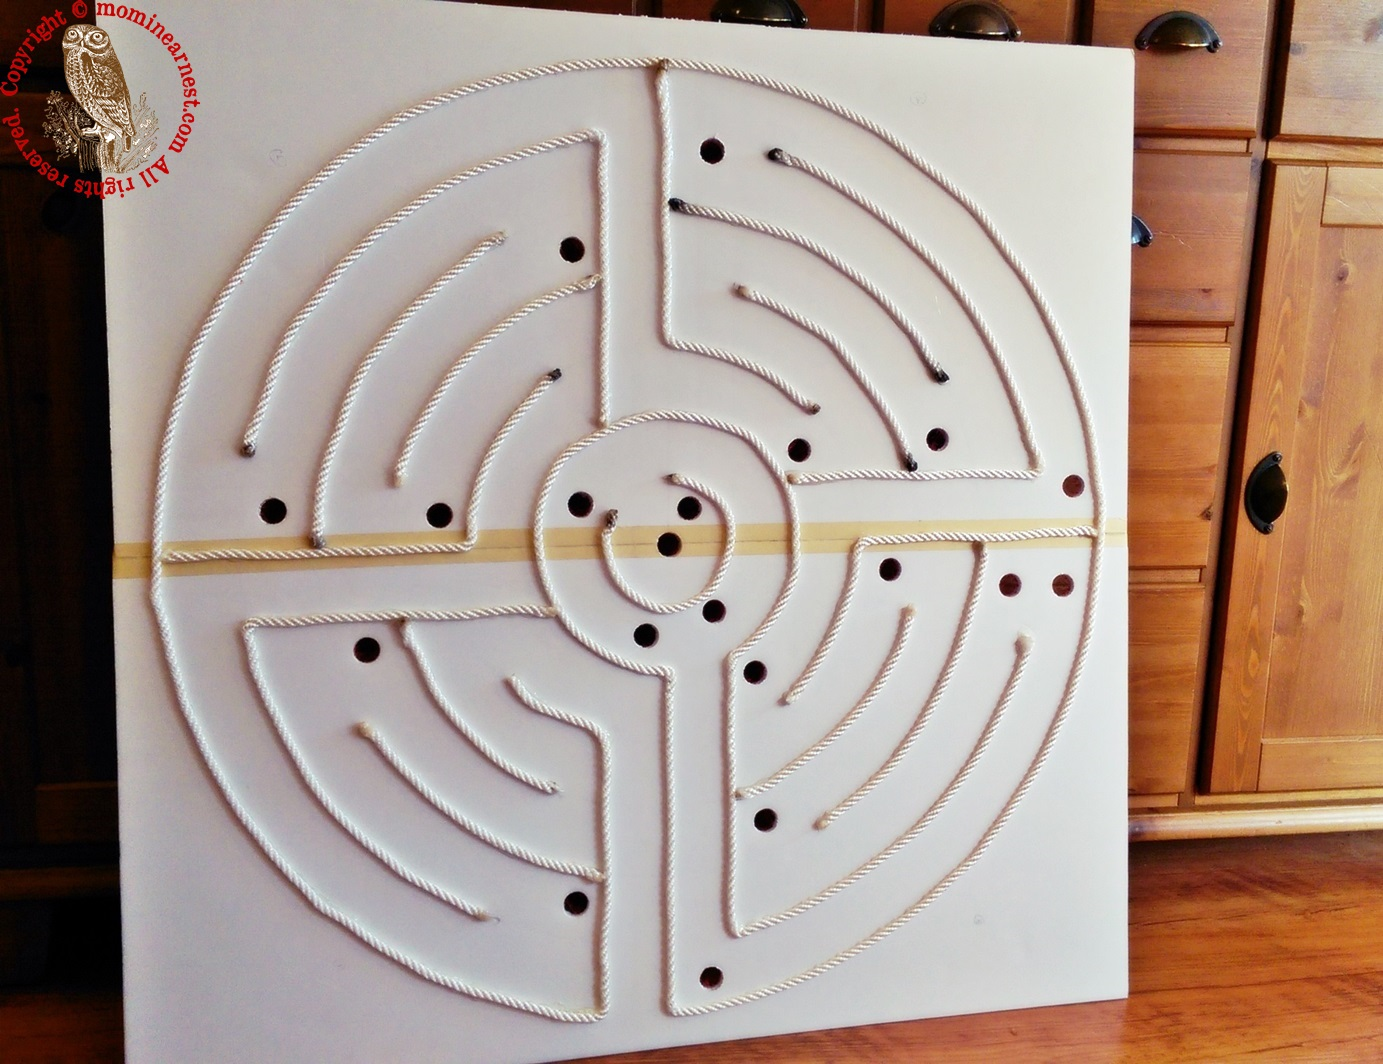 How to Make a Labyrinth Using Foam Boards